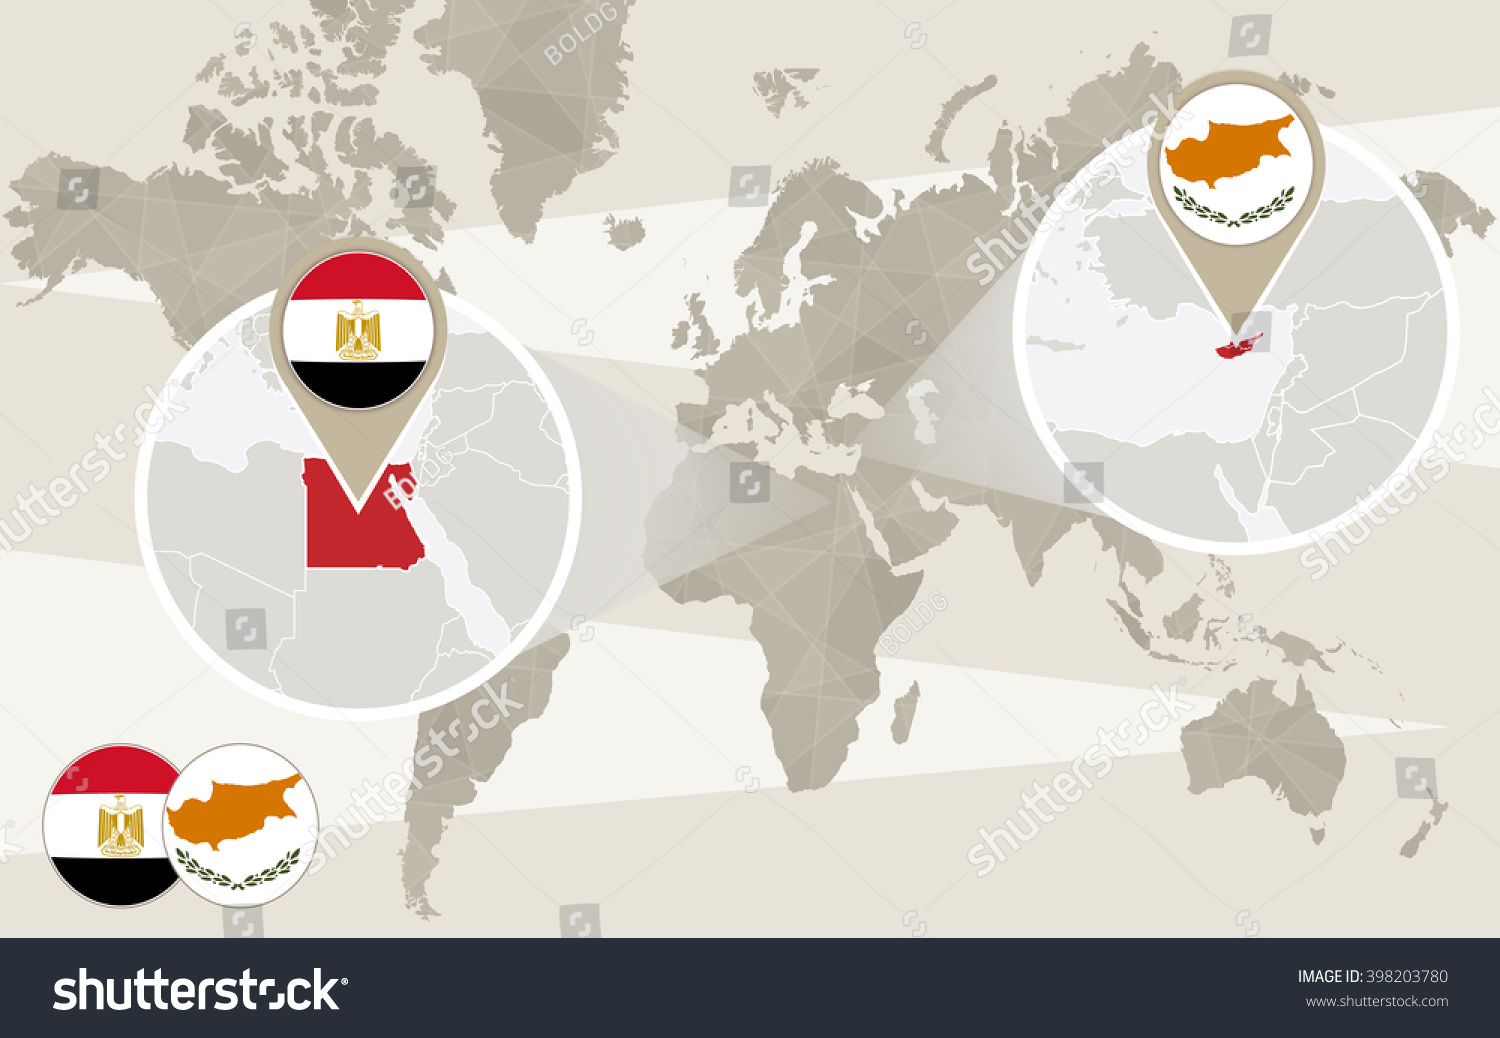 World map zoom on egypt cyprus stock vector 398203780 shutterstock world map zoom on egypt cyprus hijack egypt map with flag cyprus gumiabroncs Image collections